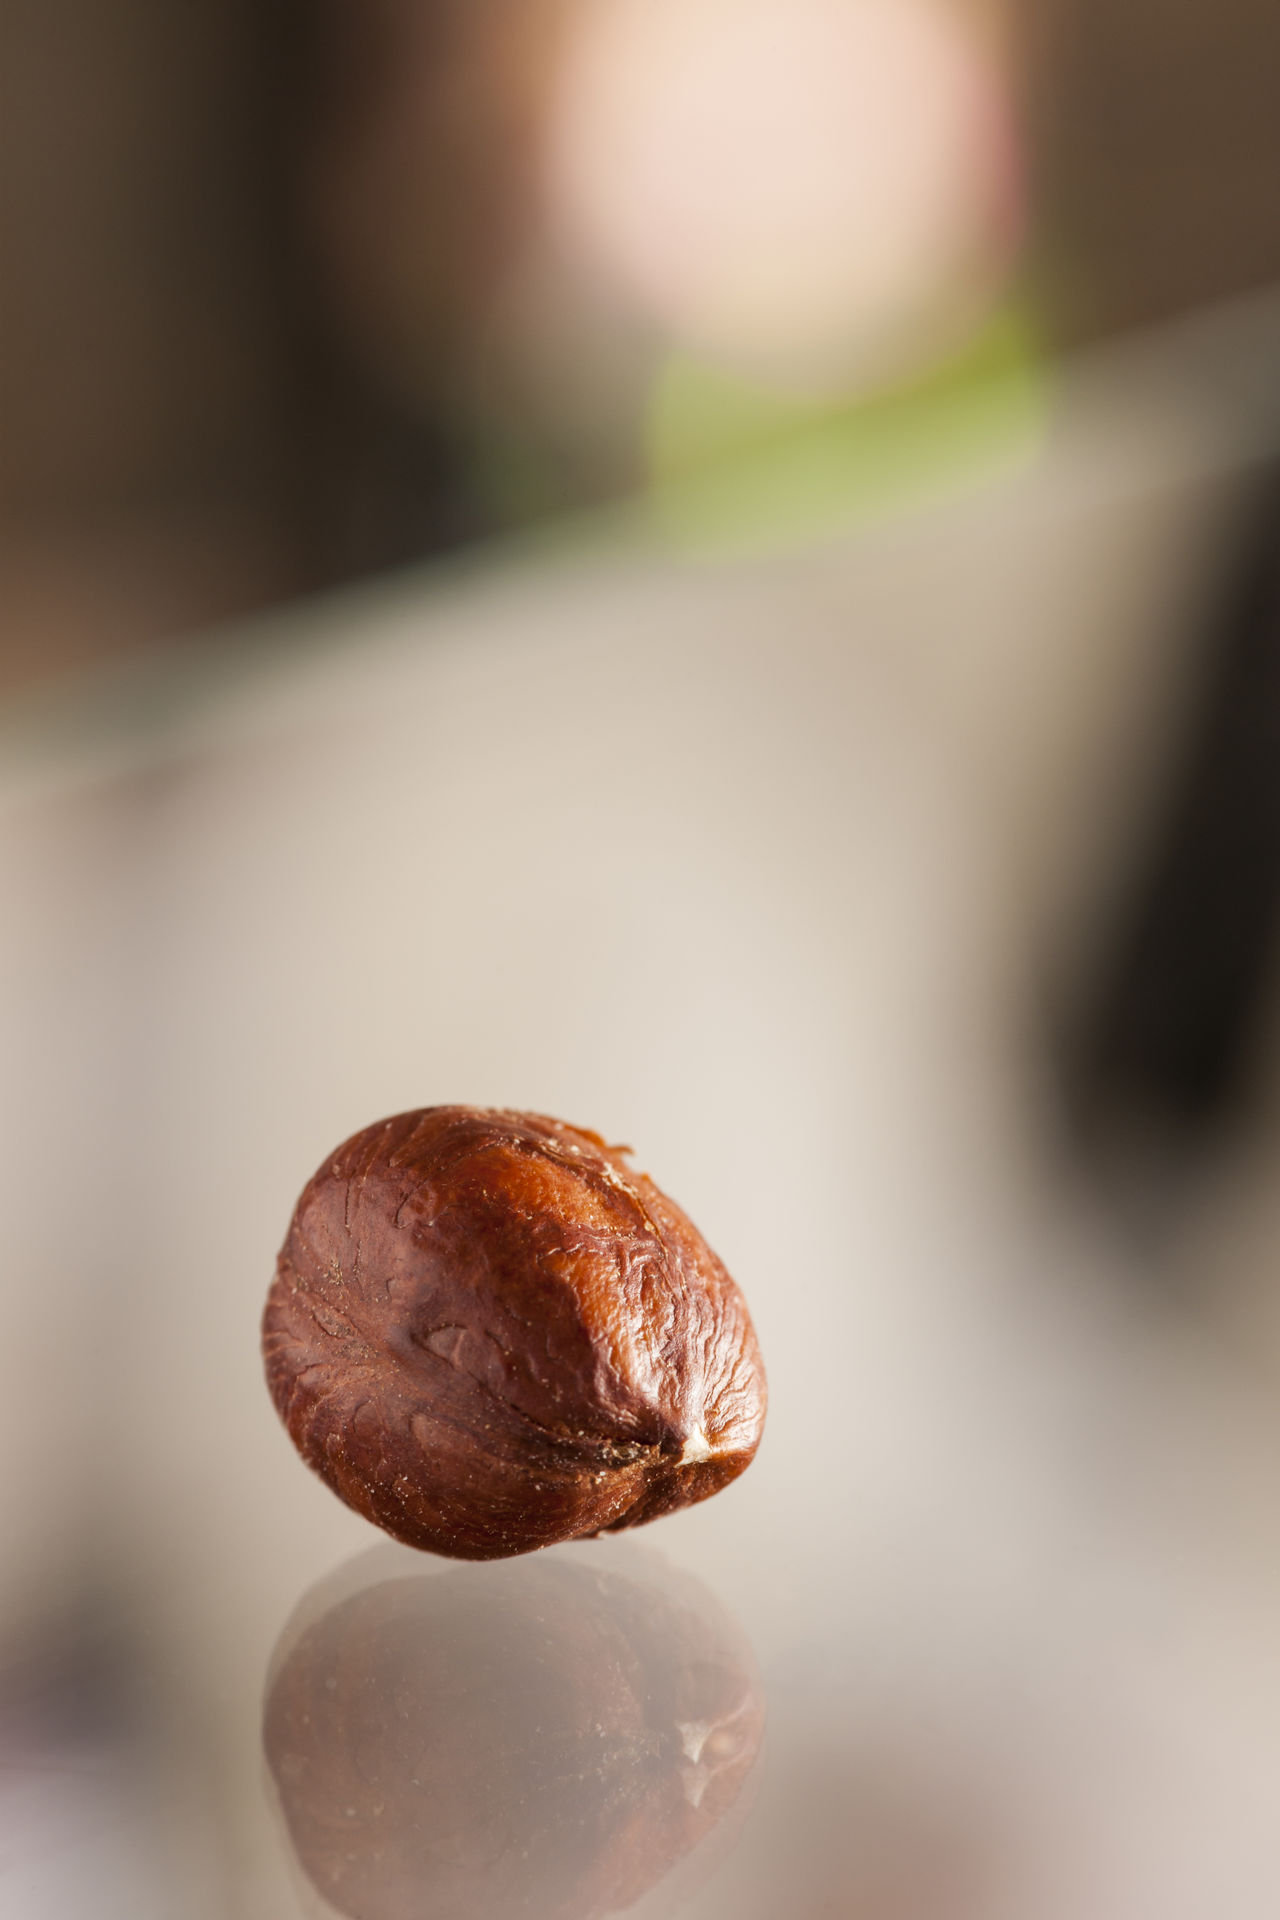 Single hazelnut on a glass plate with blurred mirrors of the surroundings. Brown Close-up Day Focus On Foreground Food Food And Drink Freshness Glass Plate Hazelnut Nature No People Nut Nut - Food Outdoors Reflection